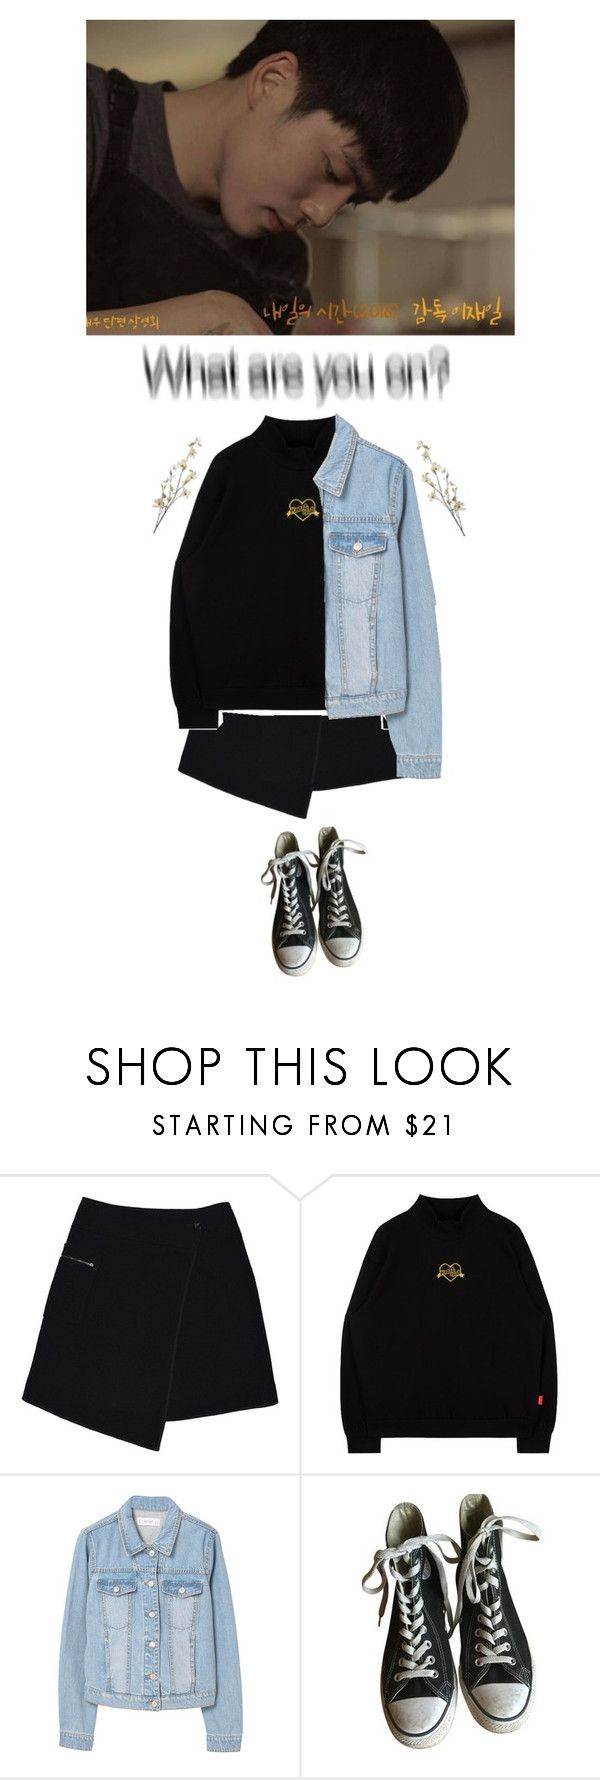 """""""Heartburn."""" by honganh010603 ❤ liked on Polyvore featuring MARC CAIN, MANGO, Converse and Pier 1 Imports"""